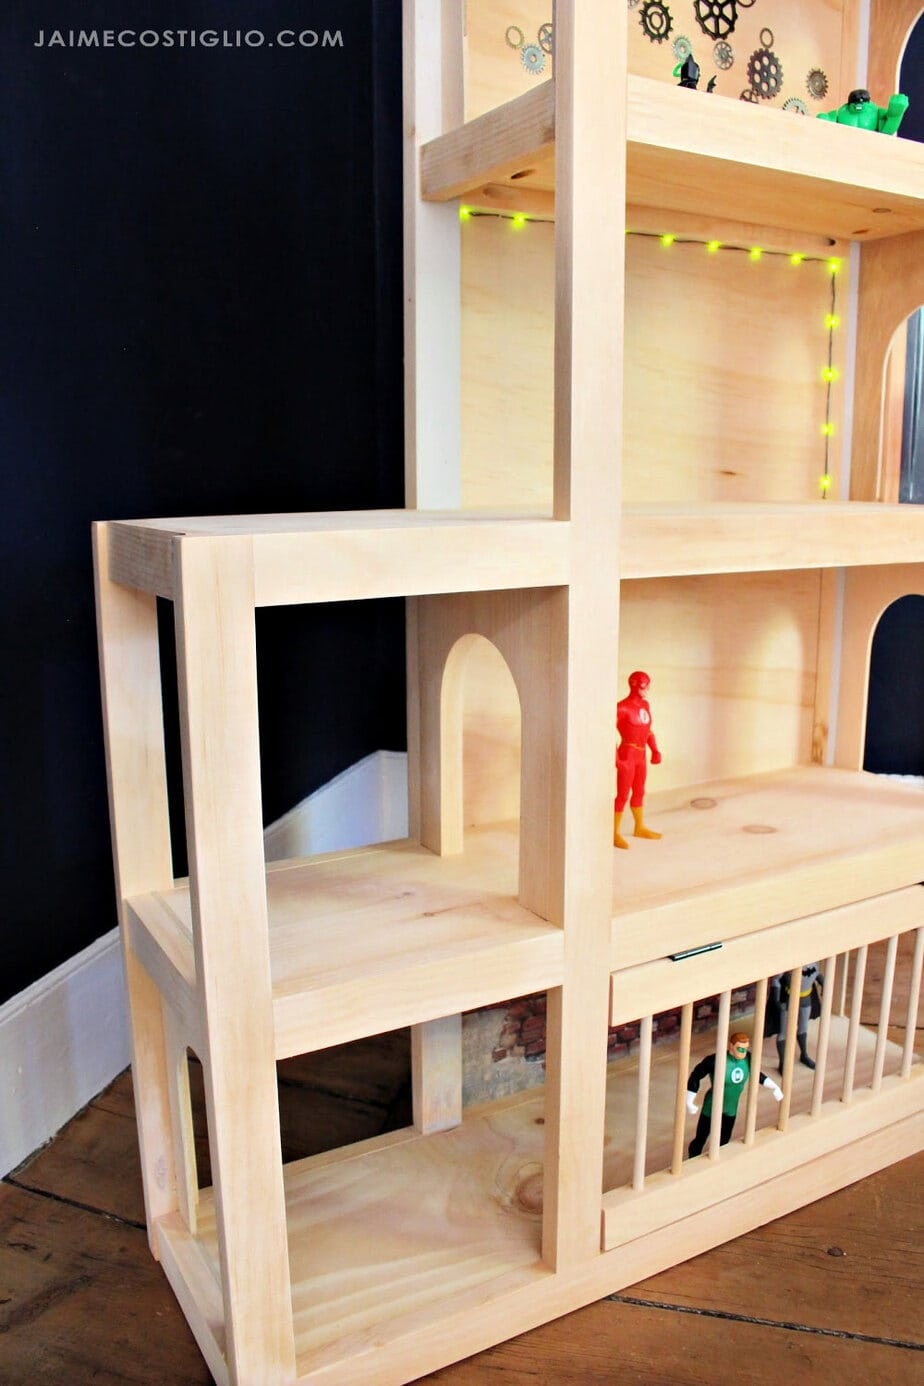 playhouse with levels